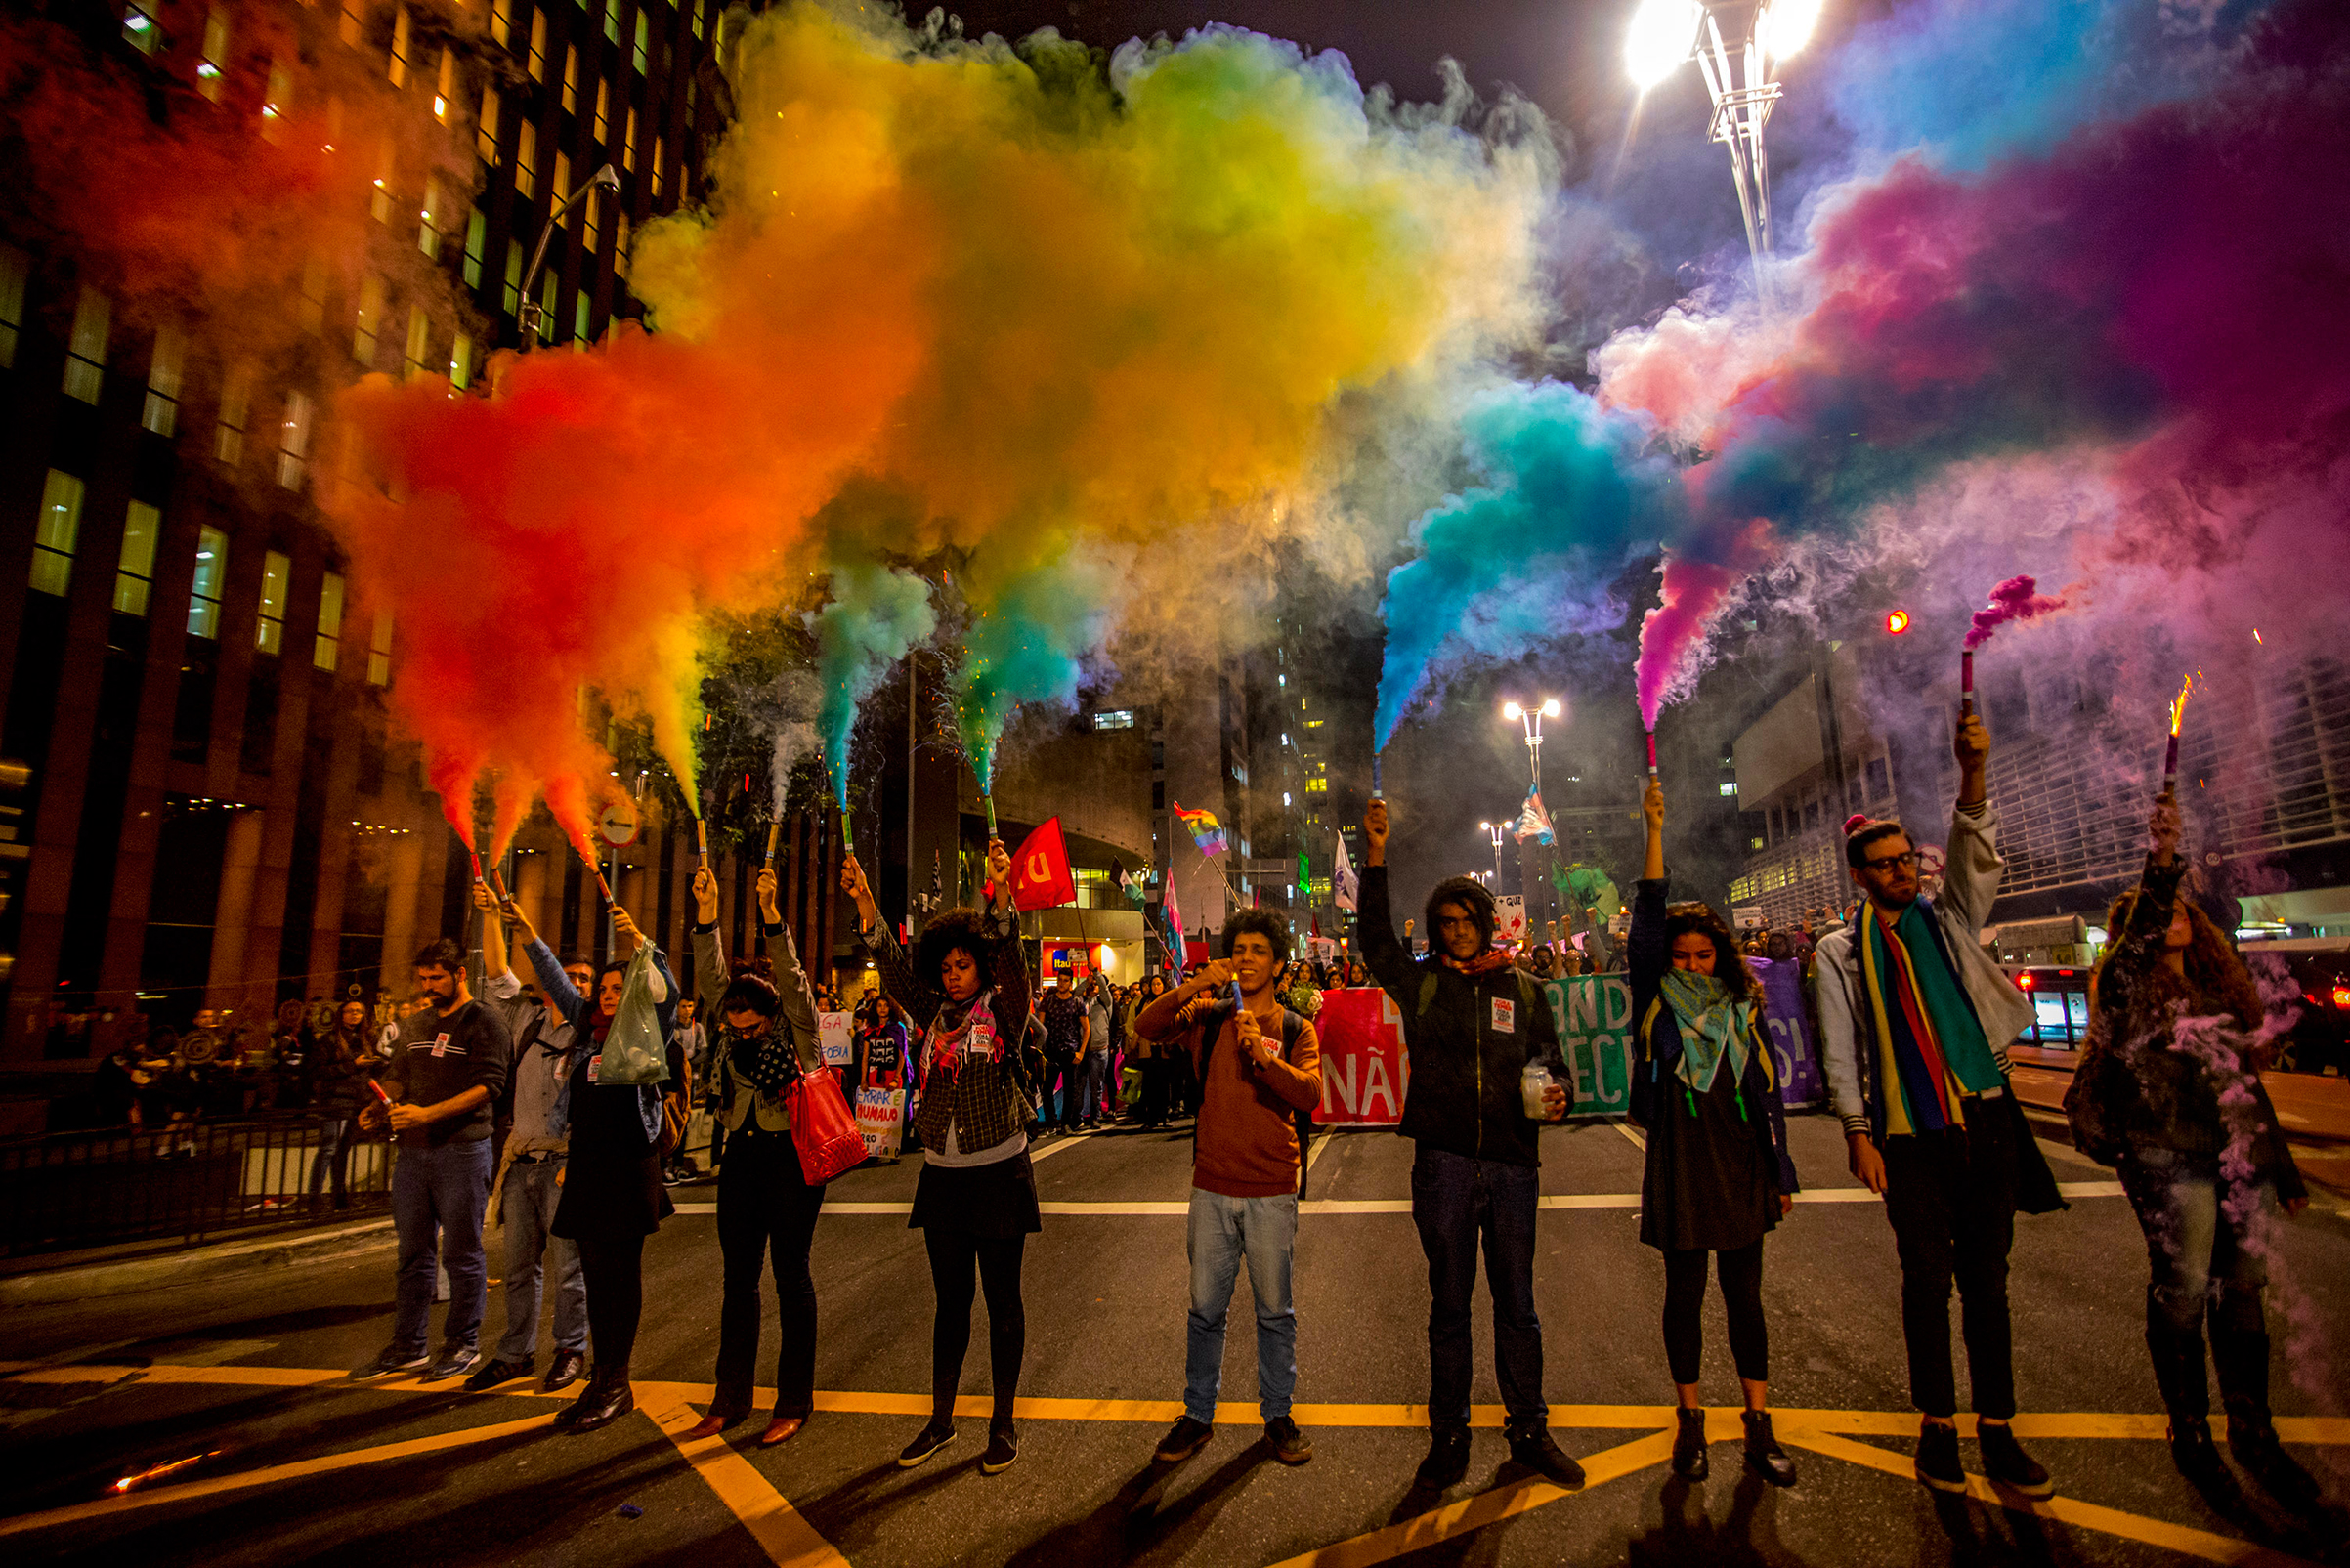 People attend a vigil in front of the Masp in Sao Paulo, Brazil on June 15, 2016, in reaction to the mass shooting at a gay nightclub in Orlando, Florida.